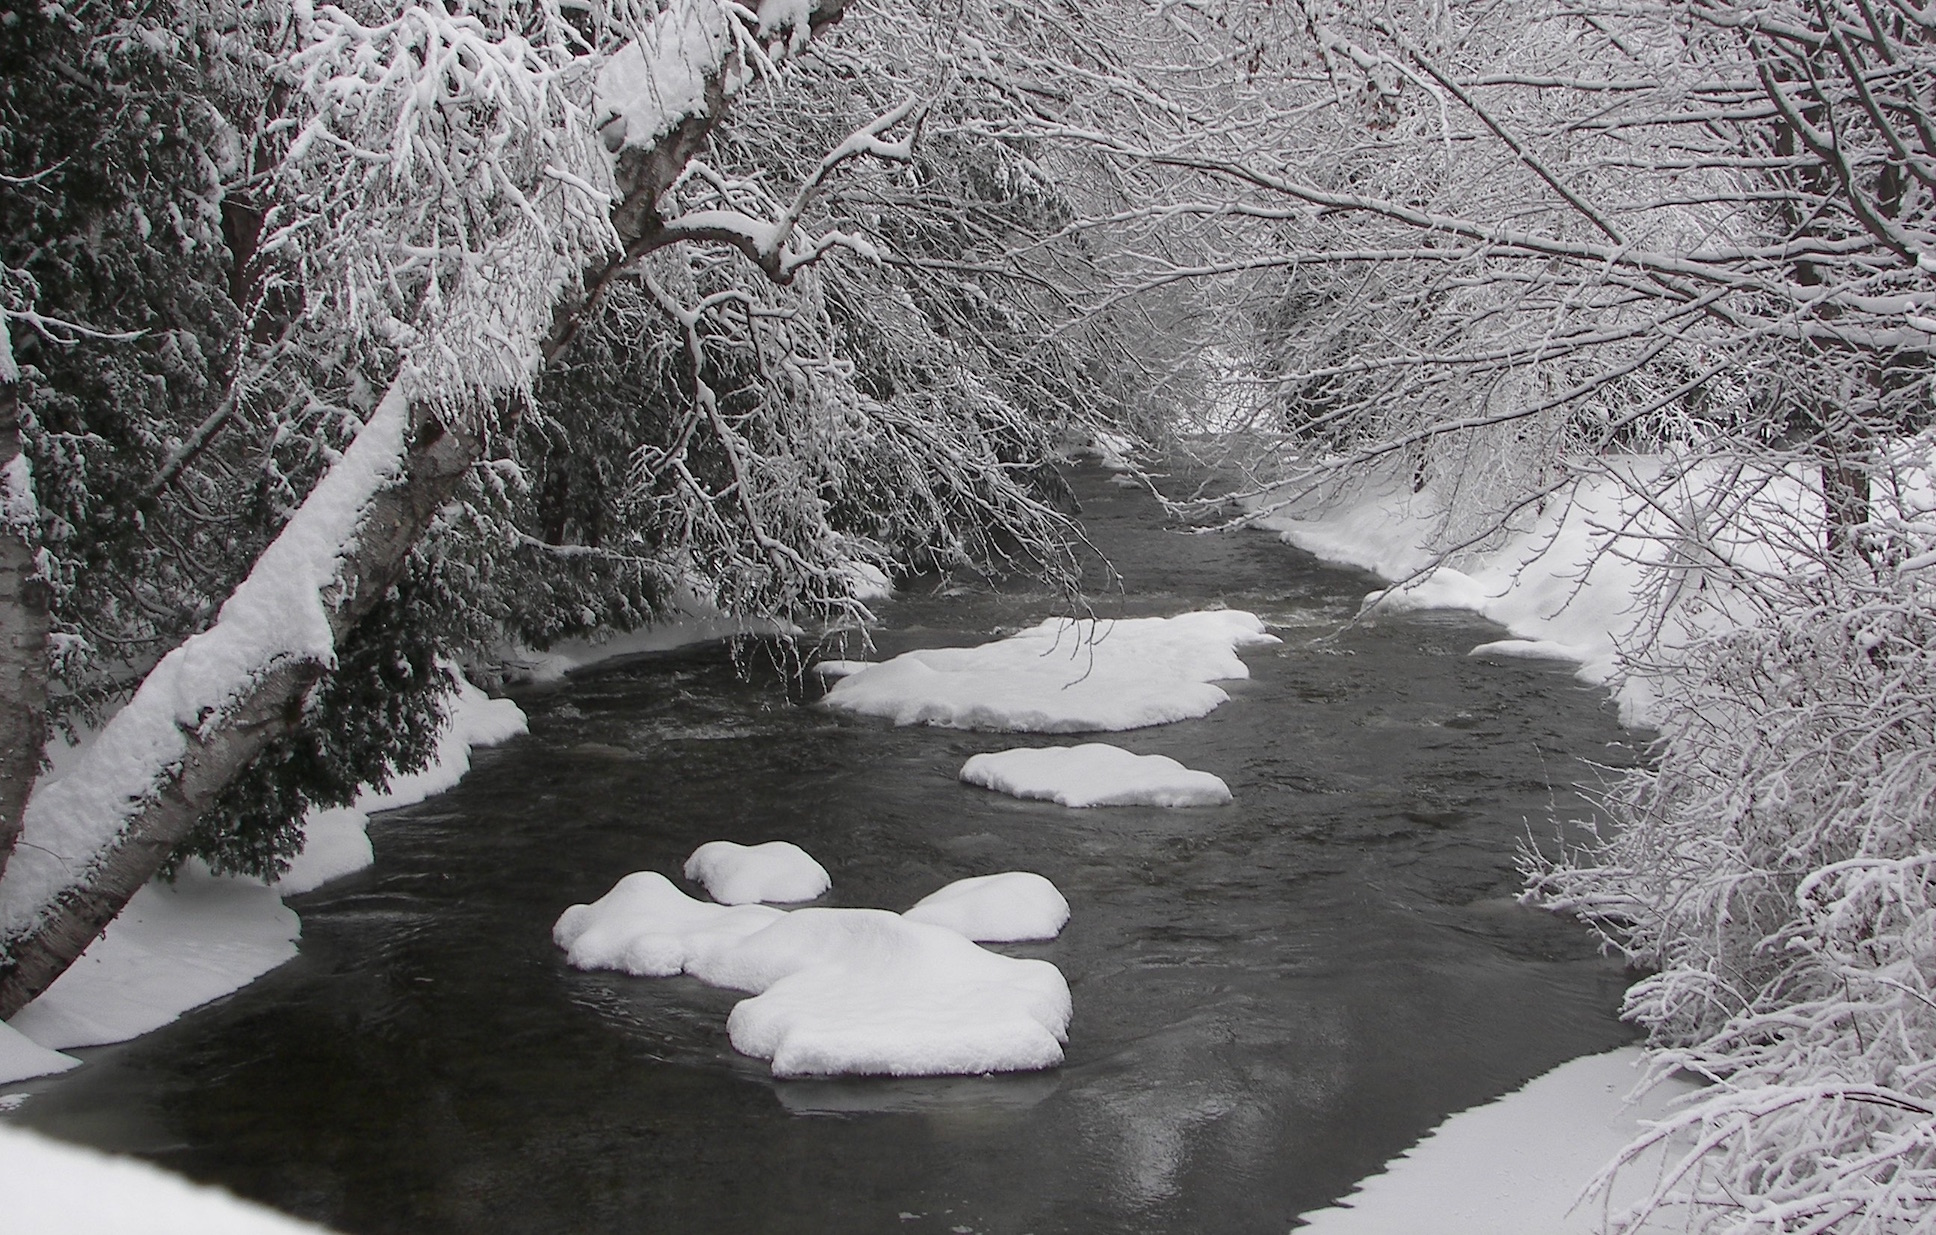 Photo of trees and water (winter) by Rene